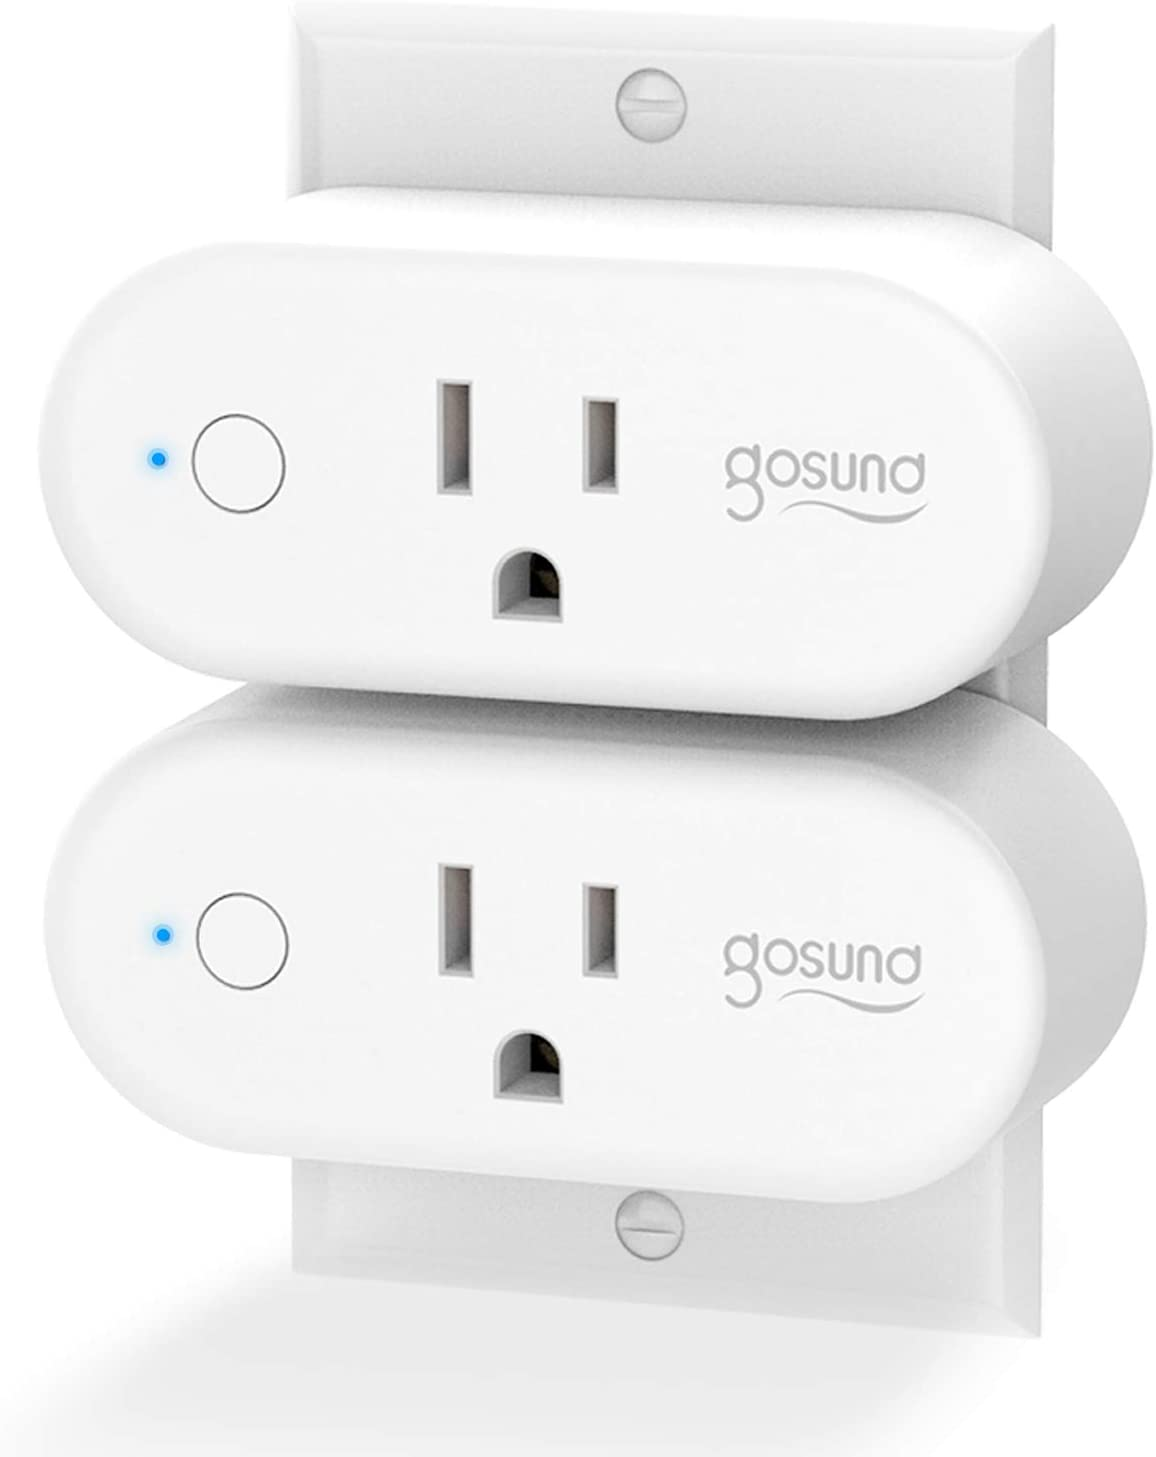 Gosund Smart Plug WiFi Outlet 15Amp Socket Compatible with Alexa Google Home Plugs Schedule and Timer 2 Pack Voice and App Control No Hub Required Upgraded Version